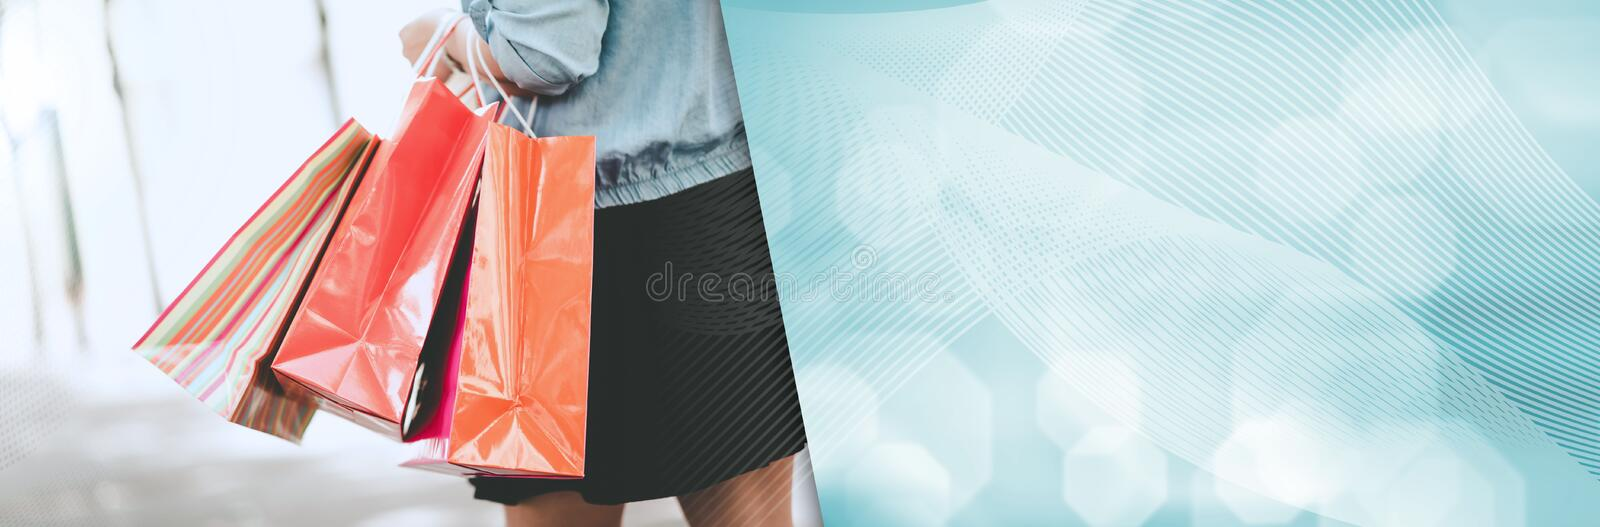 Woman walking and holding shopping bags. panoramic banner royalty free stock photo